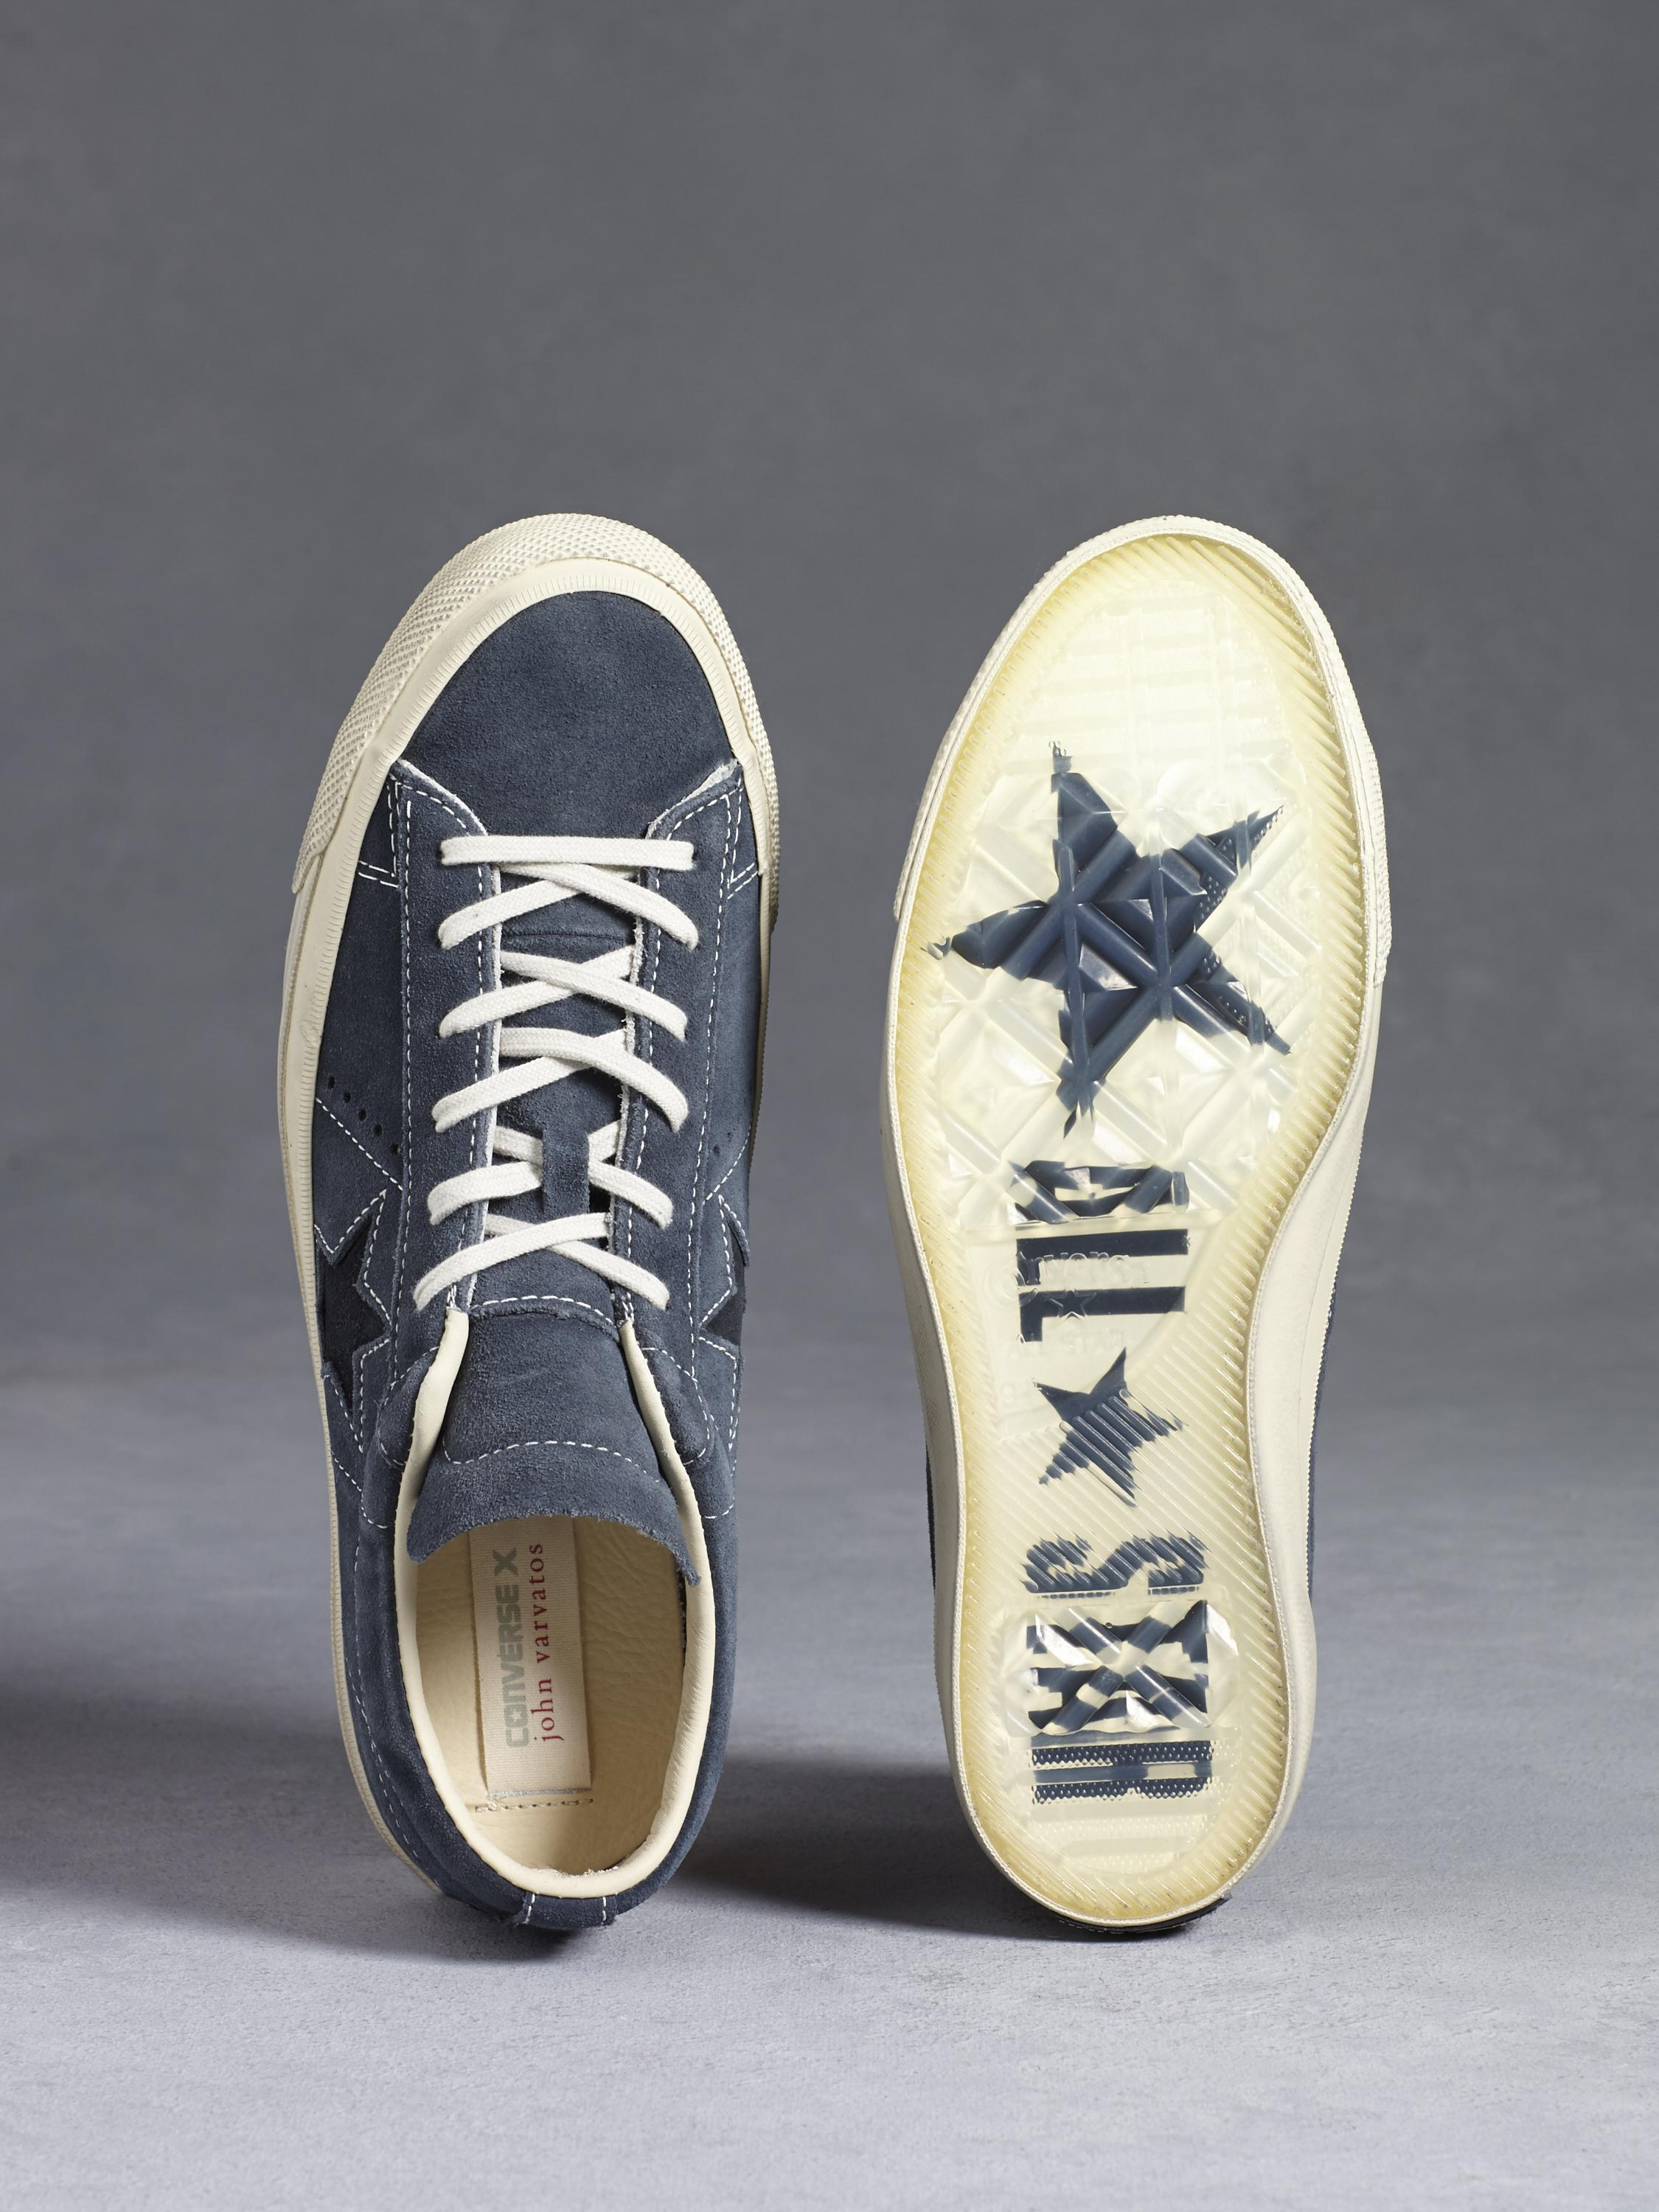 Converse john varvatos one star burnished suede one star. 1 SMPXKBA